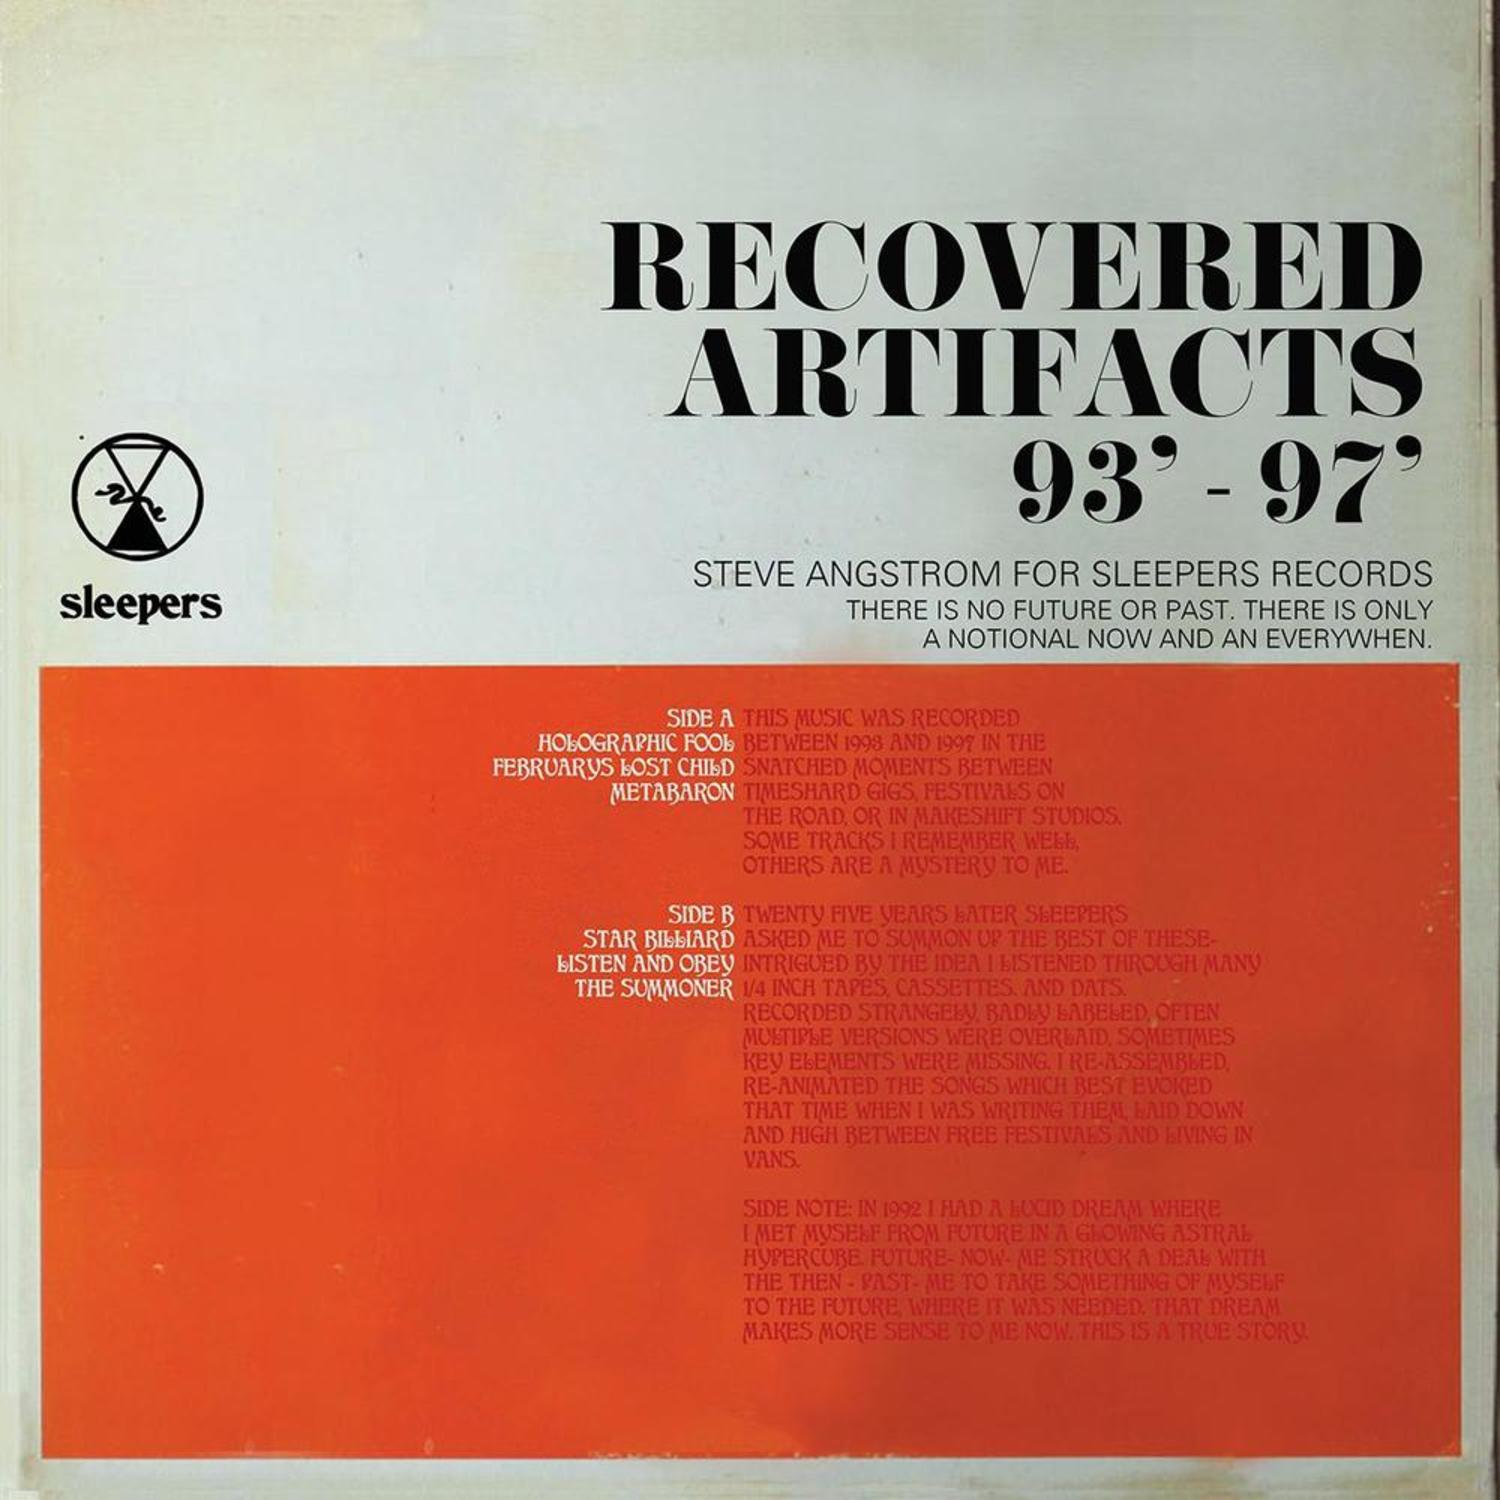 Steve Angstrom - RECOVERED ARTIFACTS 93-97